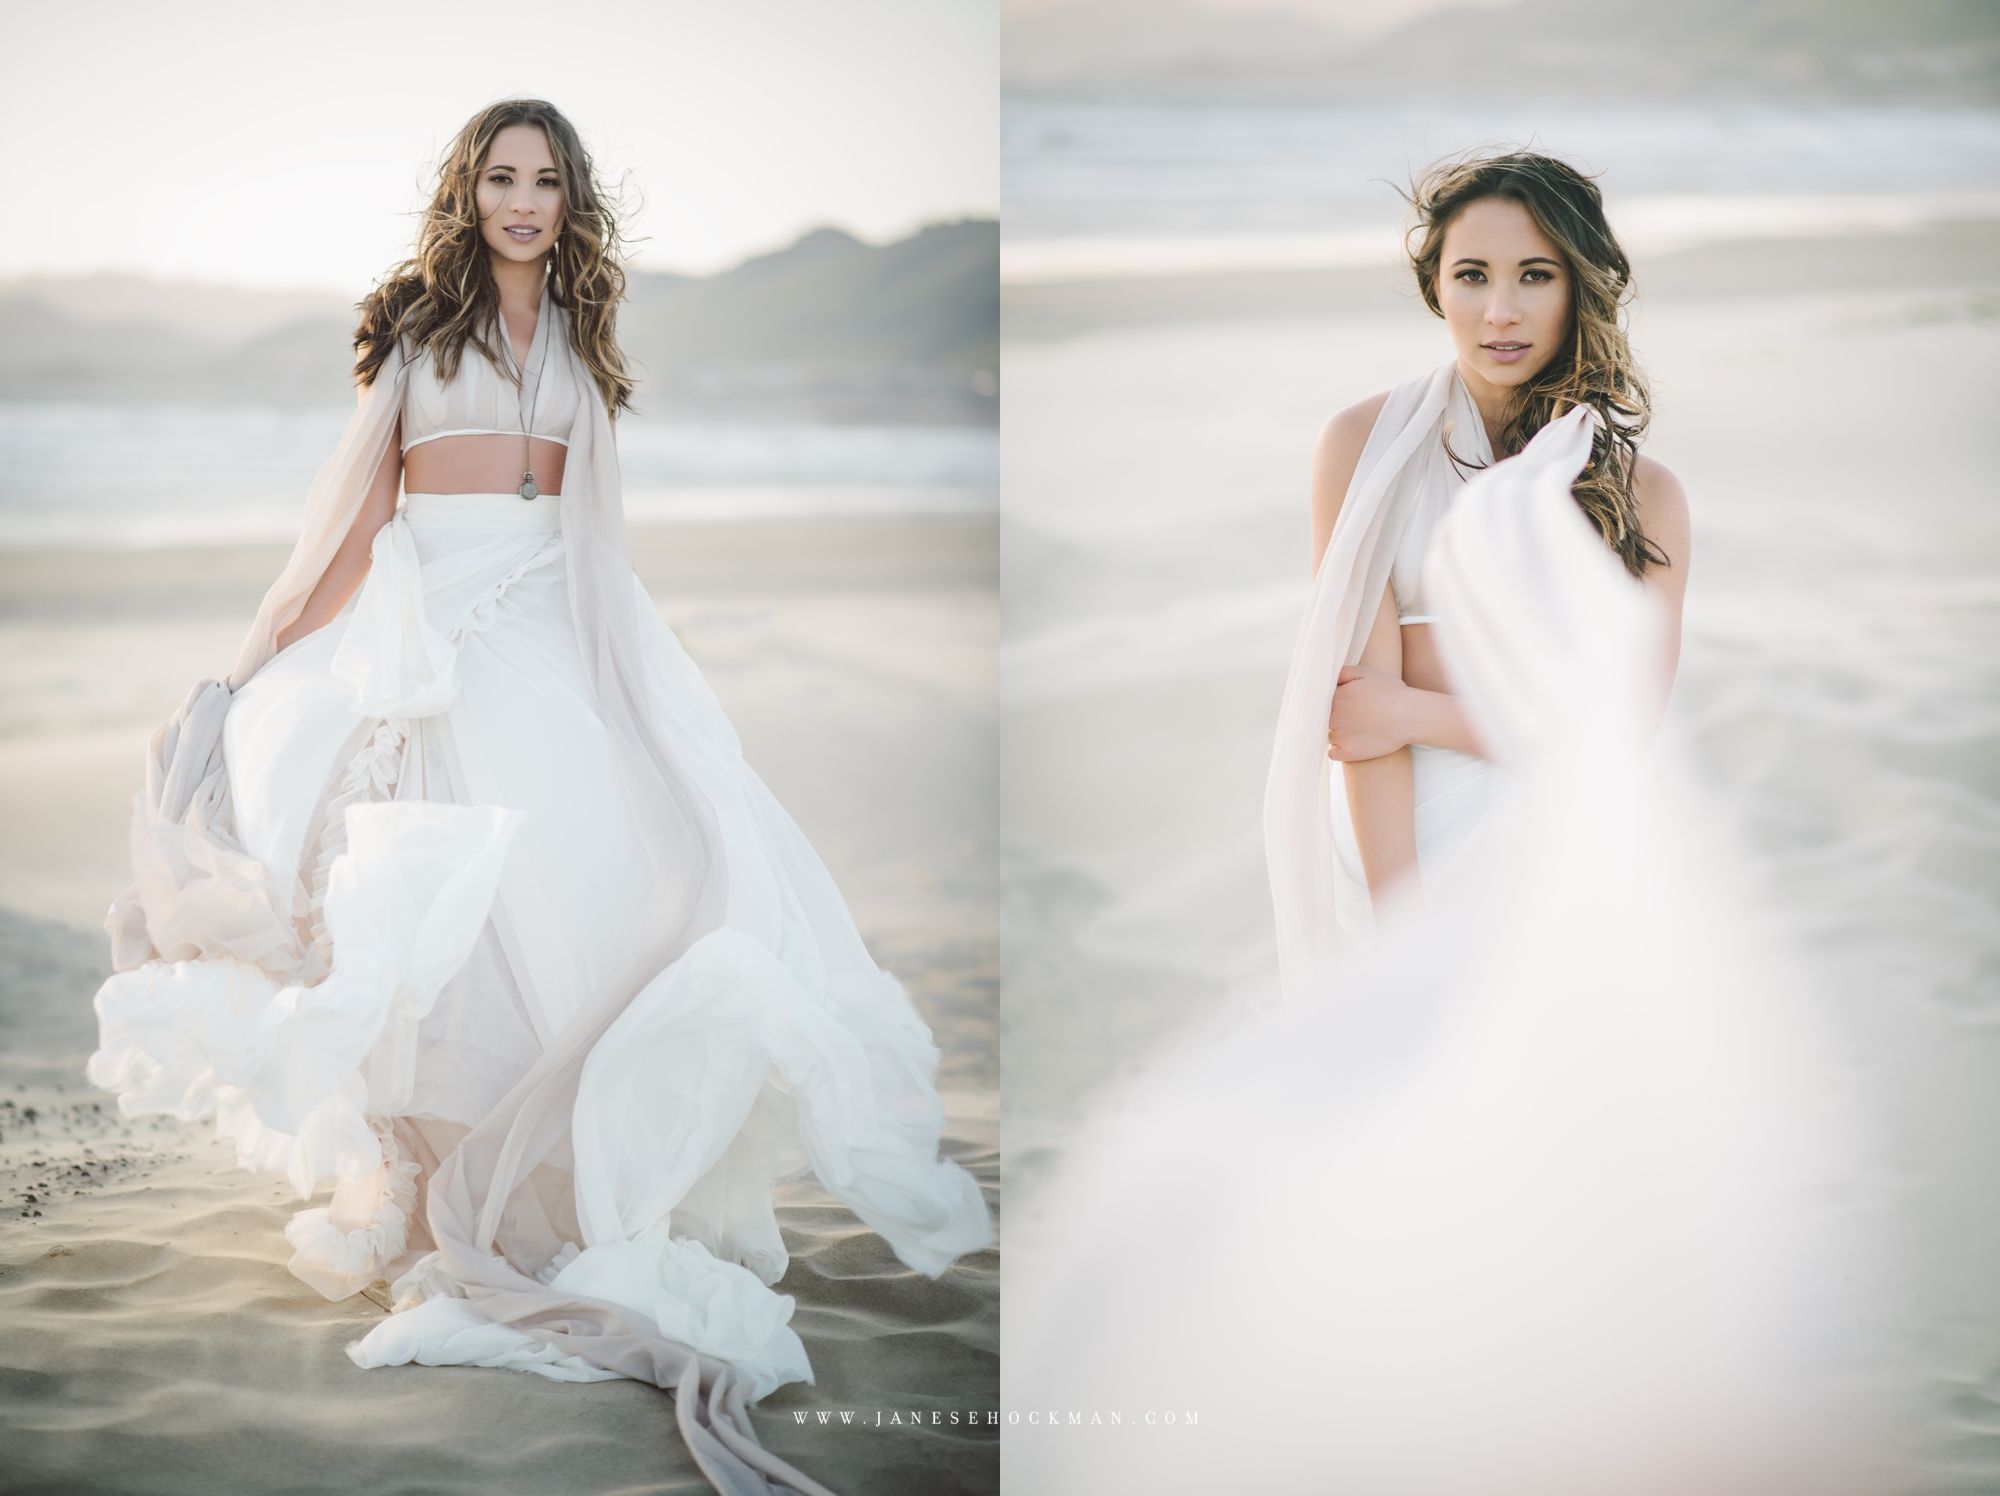 Grover Beach Sand Dunes-Janese Hockman Photography-High School Senior Portraits-Creative Shoot 6.jpg